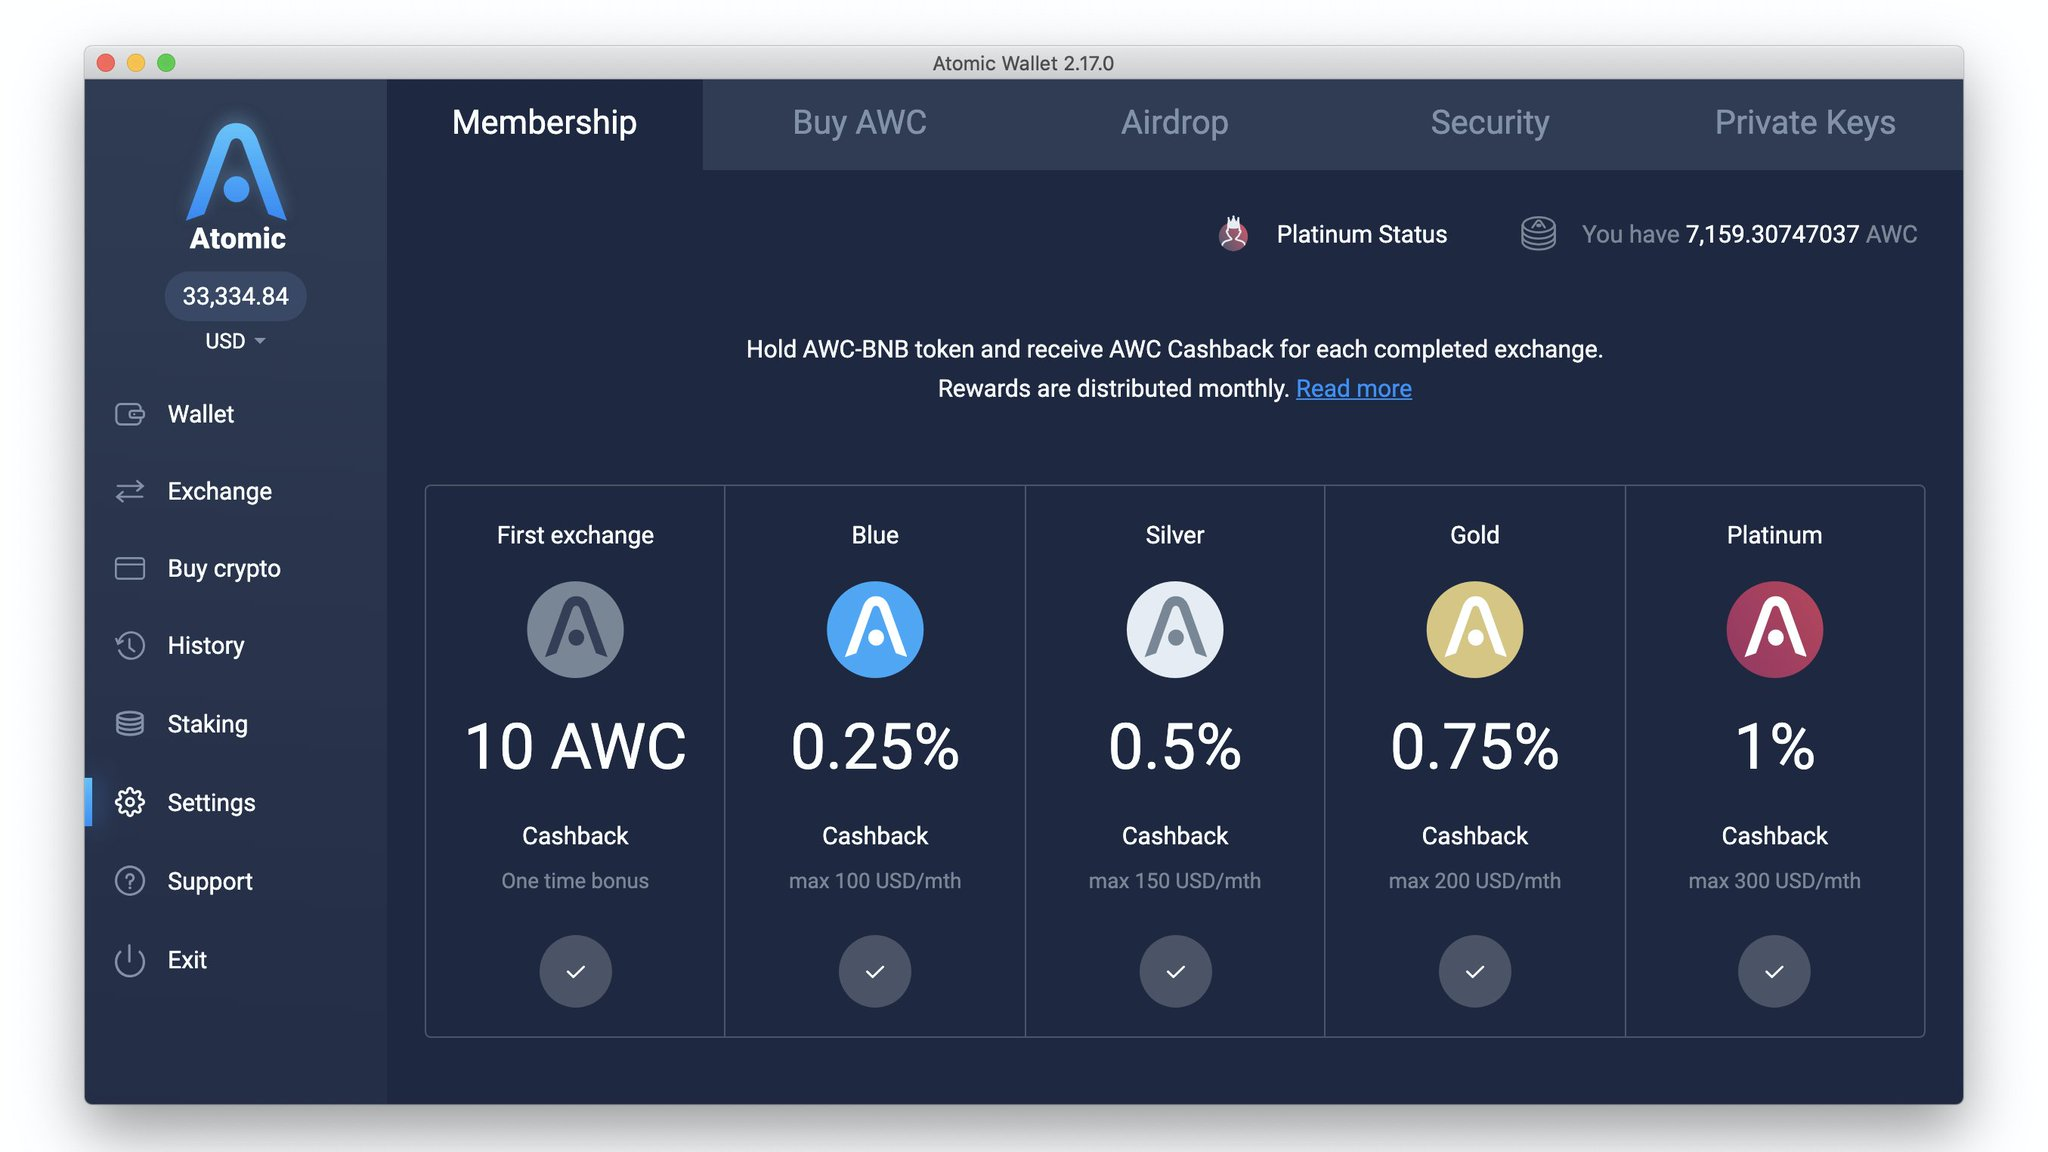 atomicwallet io on twitter monthly cashback rewards and exchange bonuses are distributed to over 10k active atomic traders hold awc to get up to 1 cashback for every exchange in atomic or monthly cashback rewards and exchange